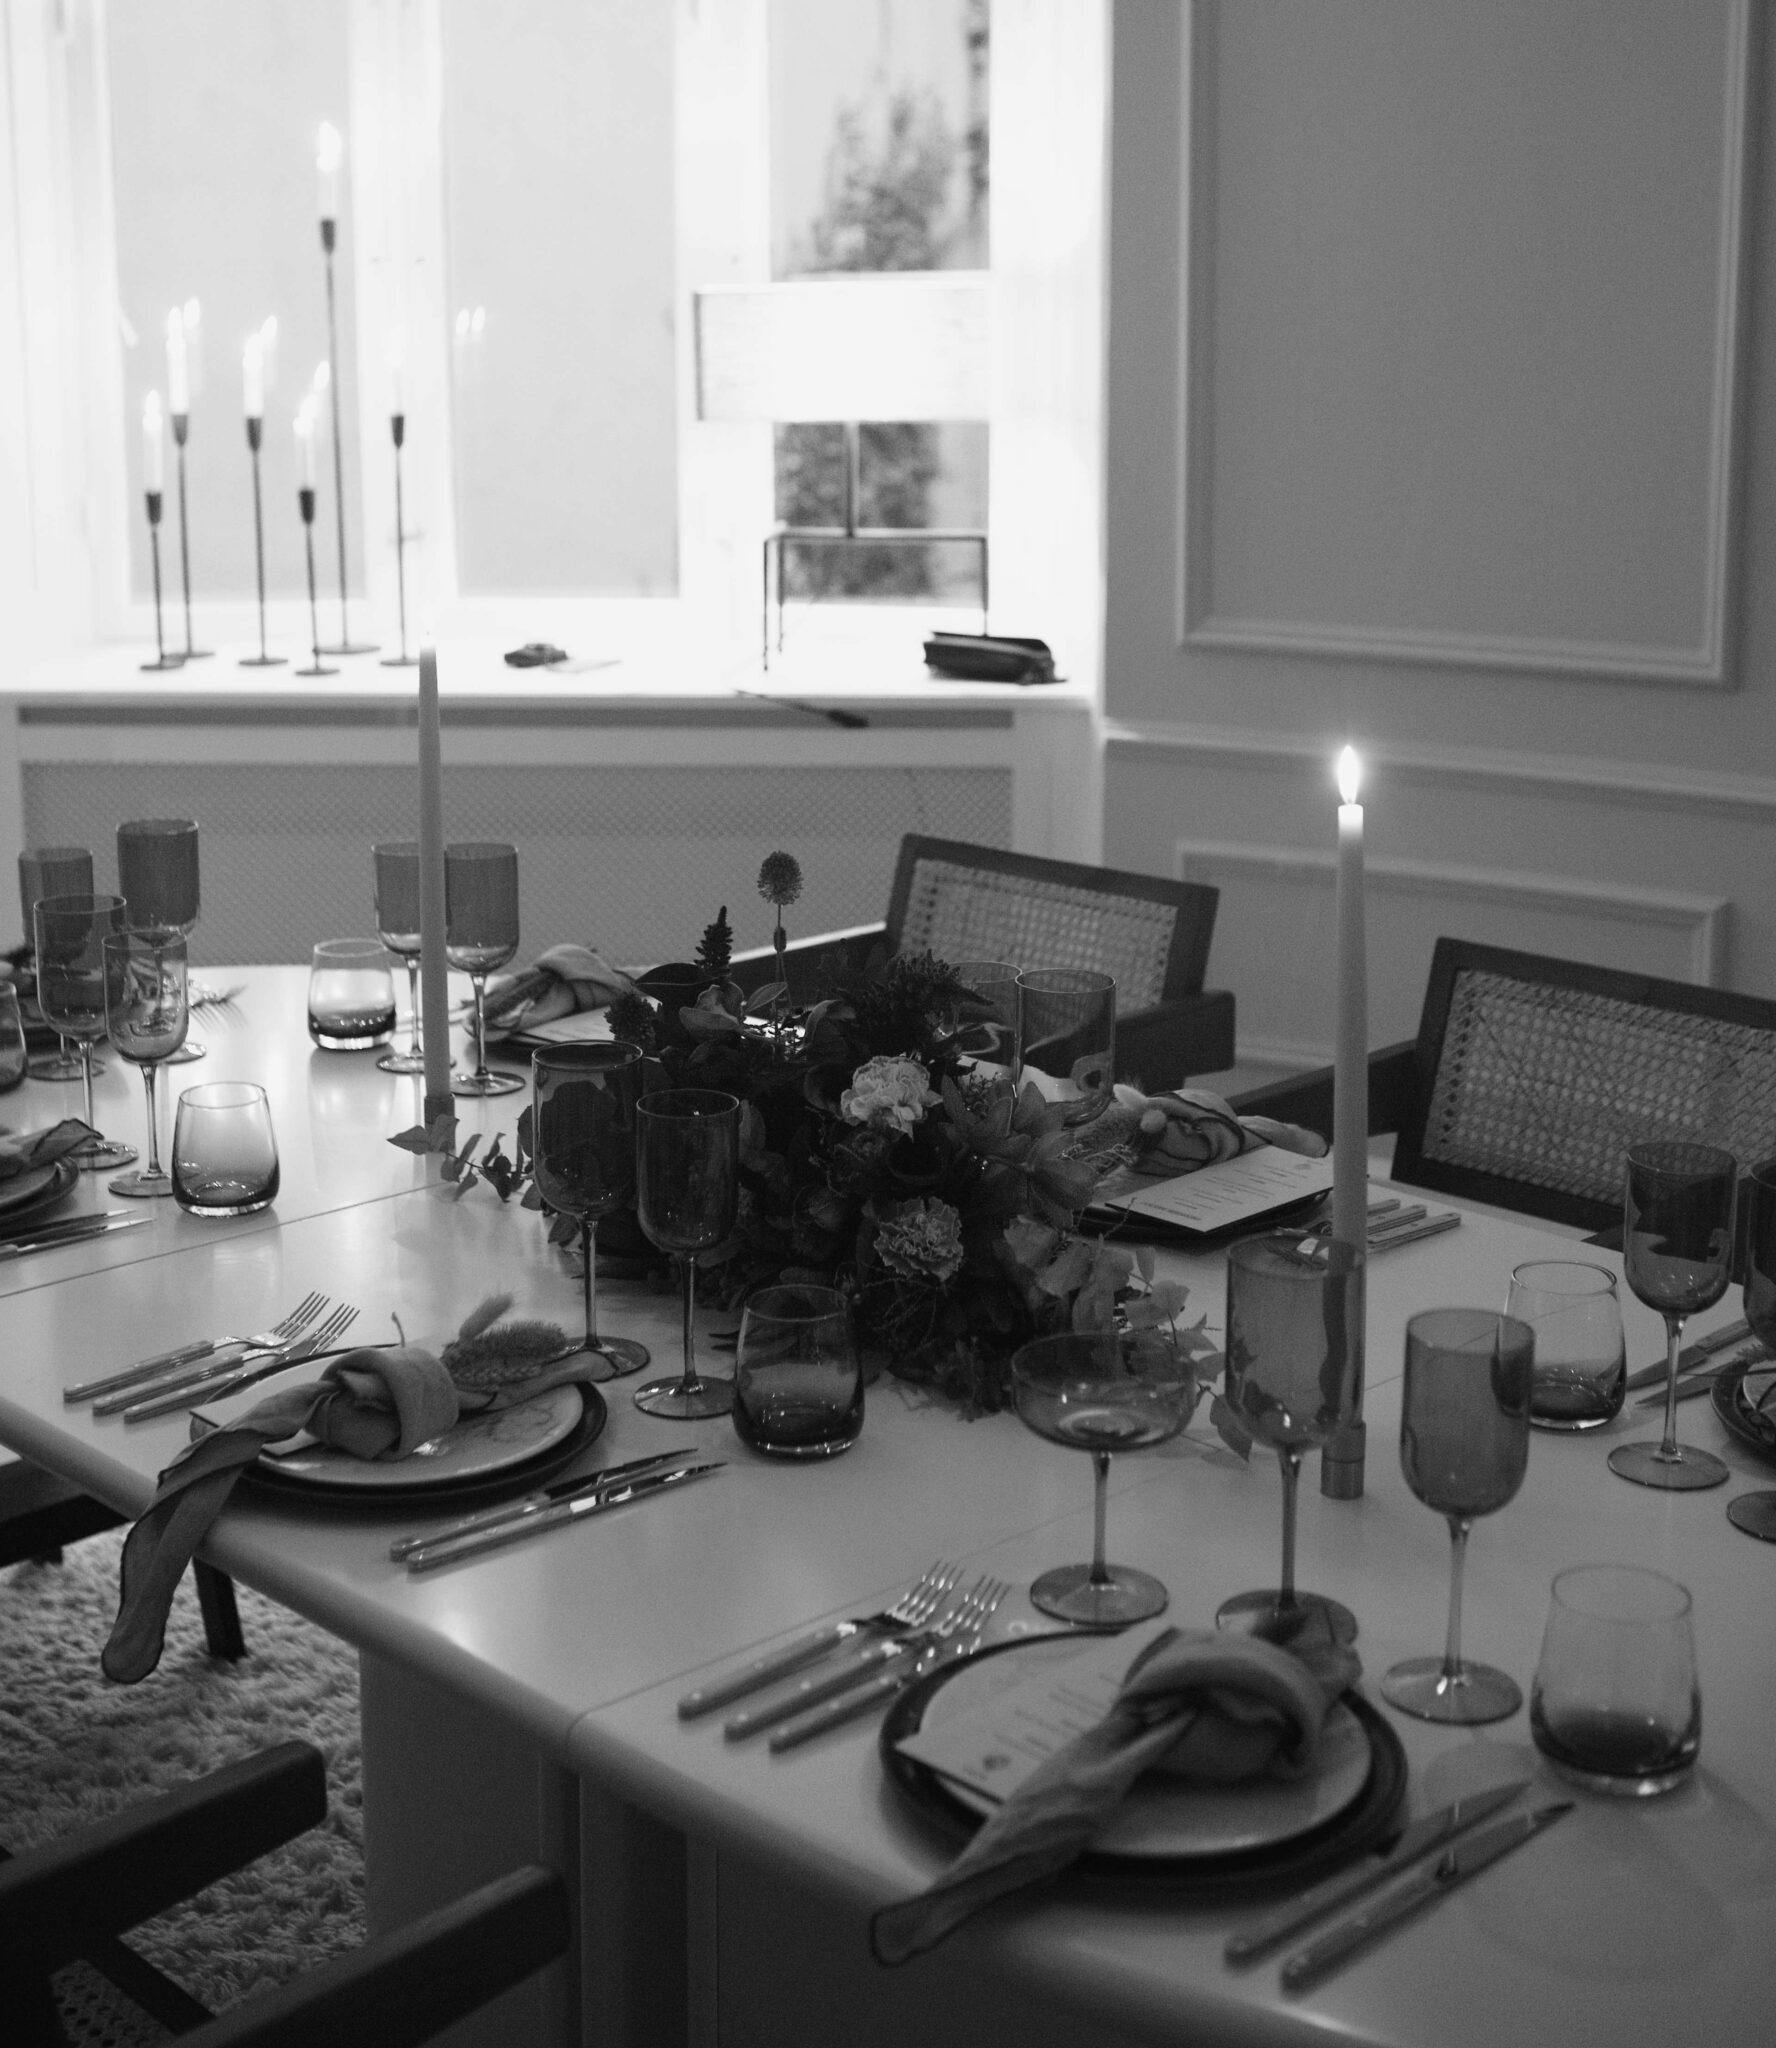 Private dining anretning